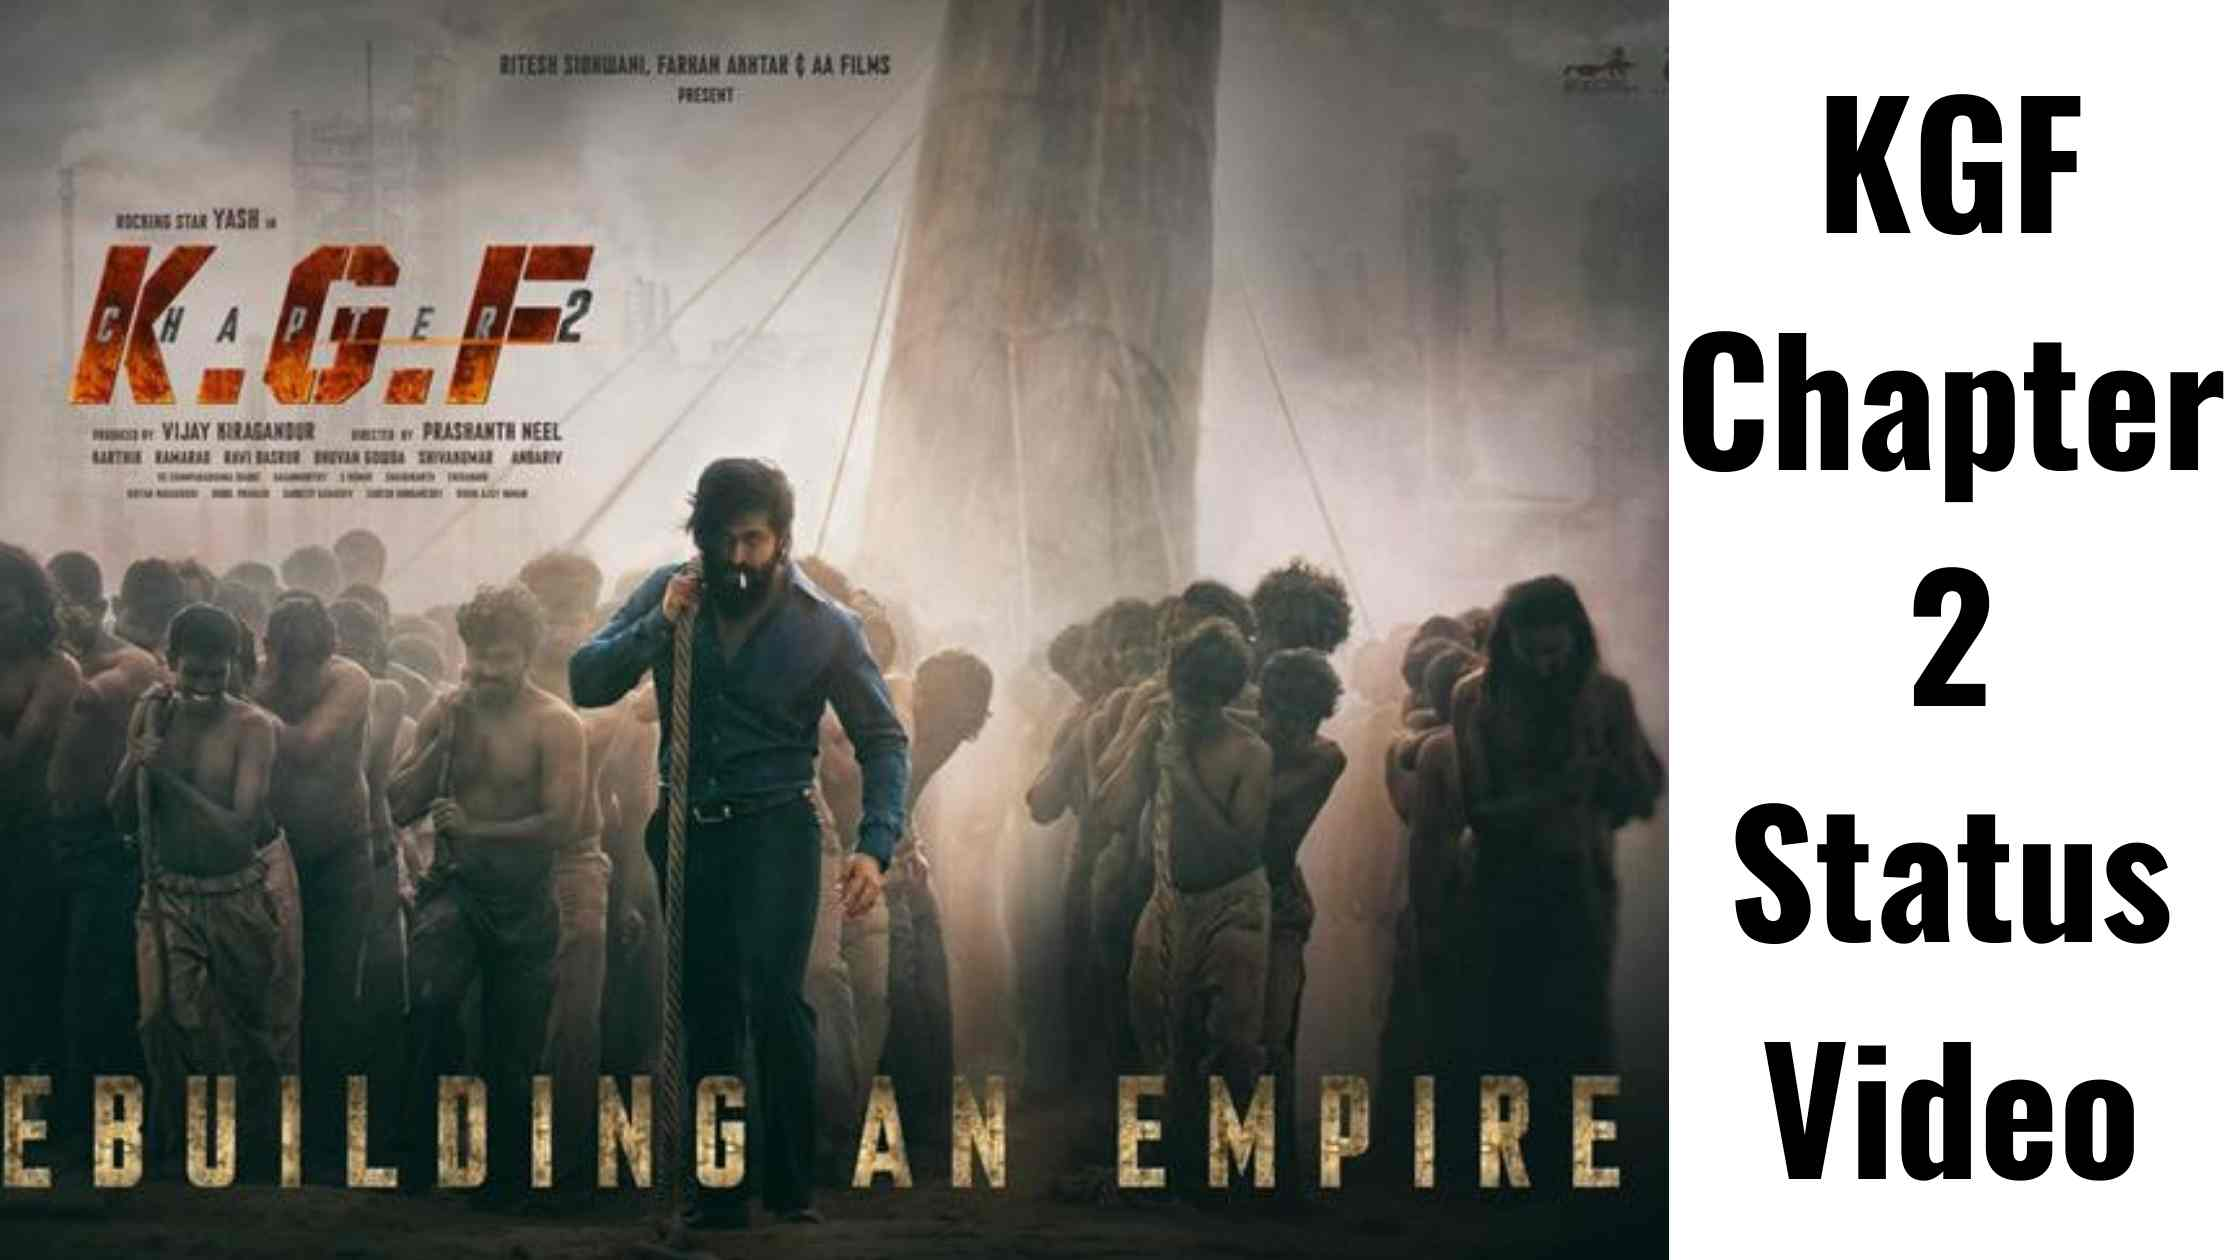 Kgf Chapter 2 status video download